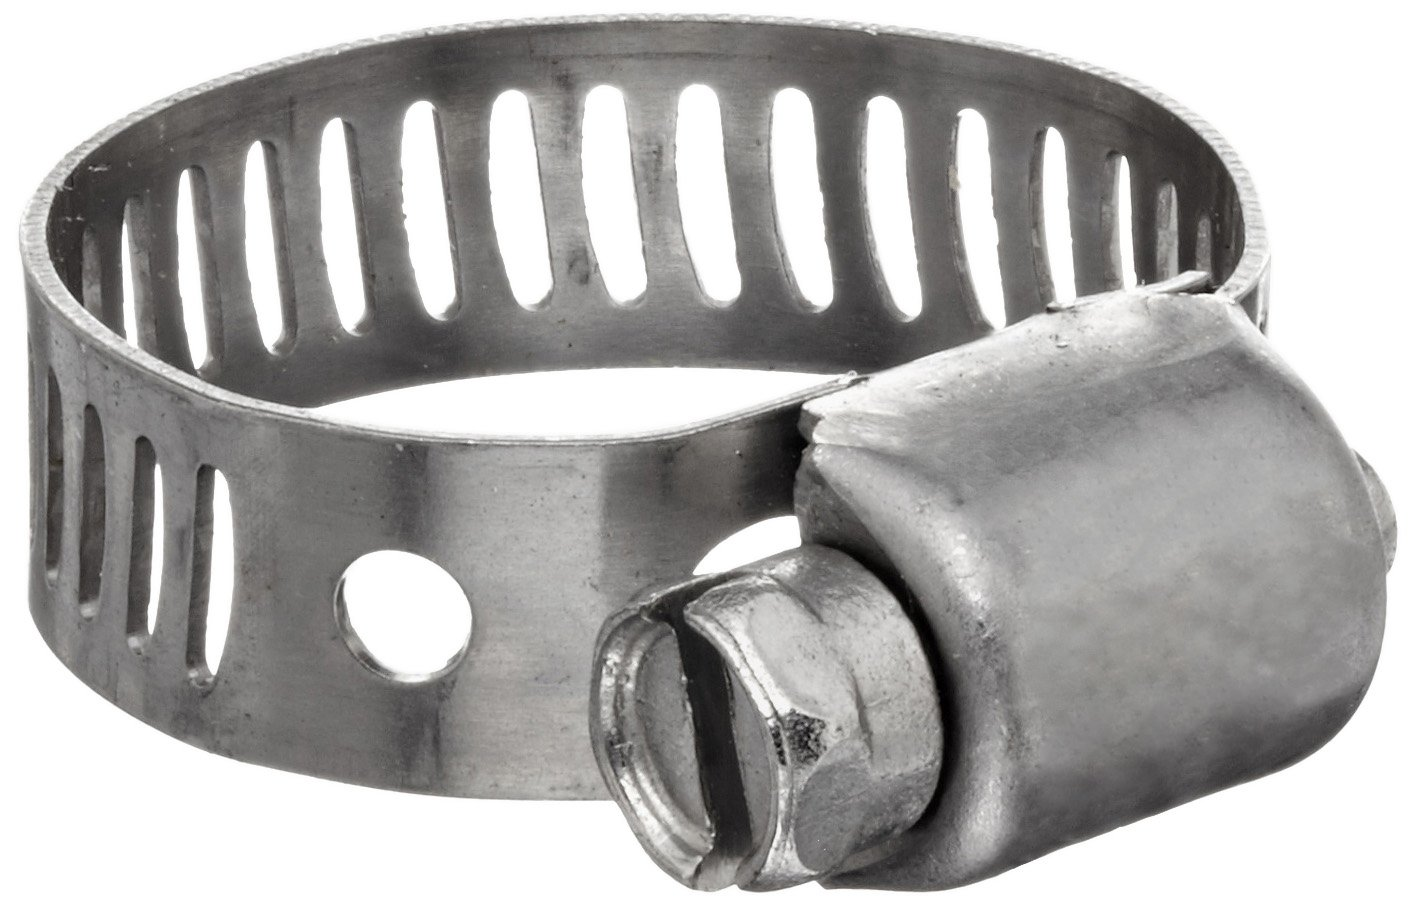 Dixon MAH8 Stainless Steel Miniature Worm Gear Hose Clamp with SAE 300 Stainless Steel Screw 1//2 to 29//32 Hose OD Range 5//16 Band Width Pack of 10